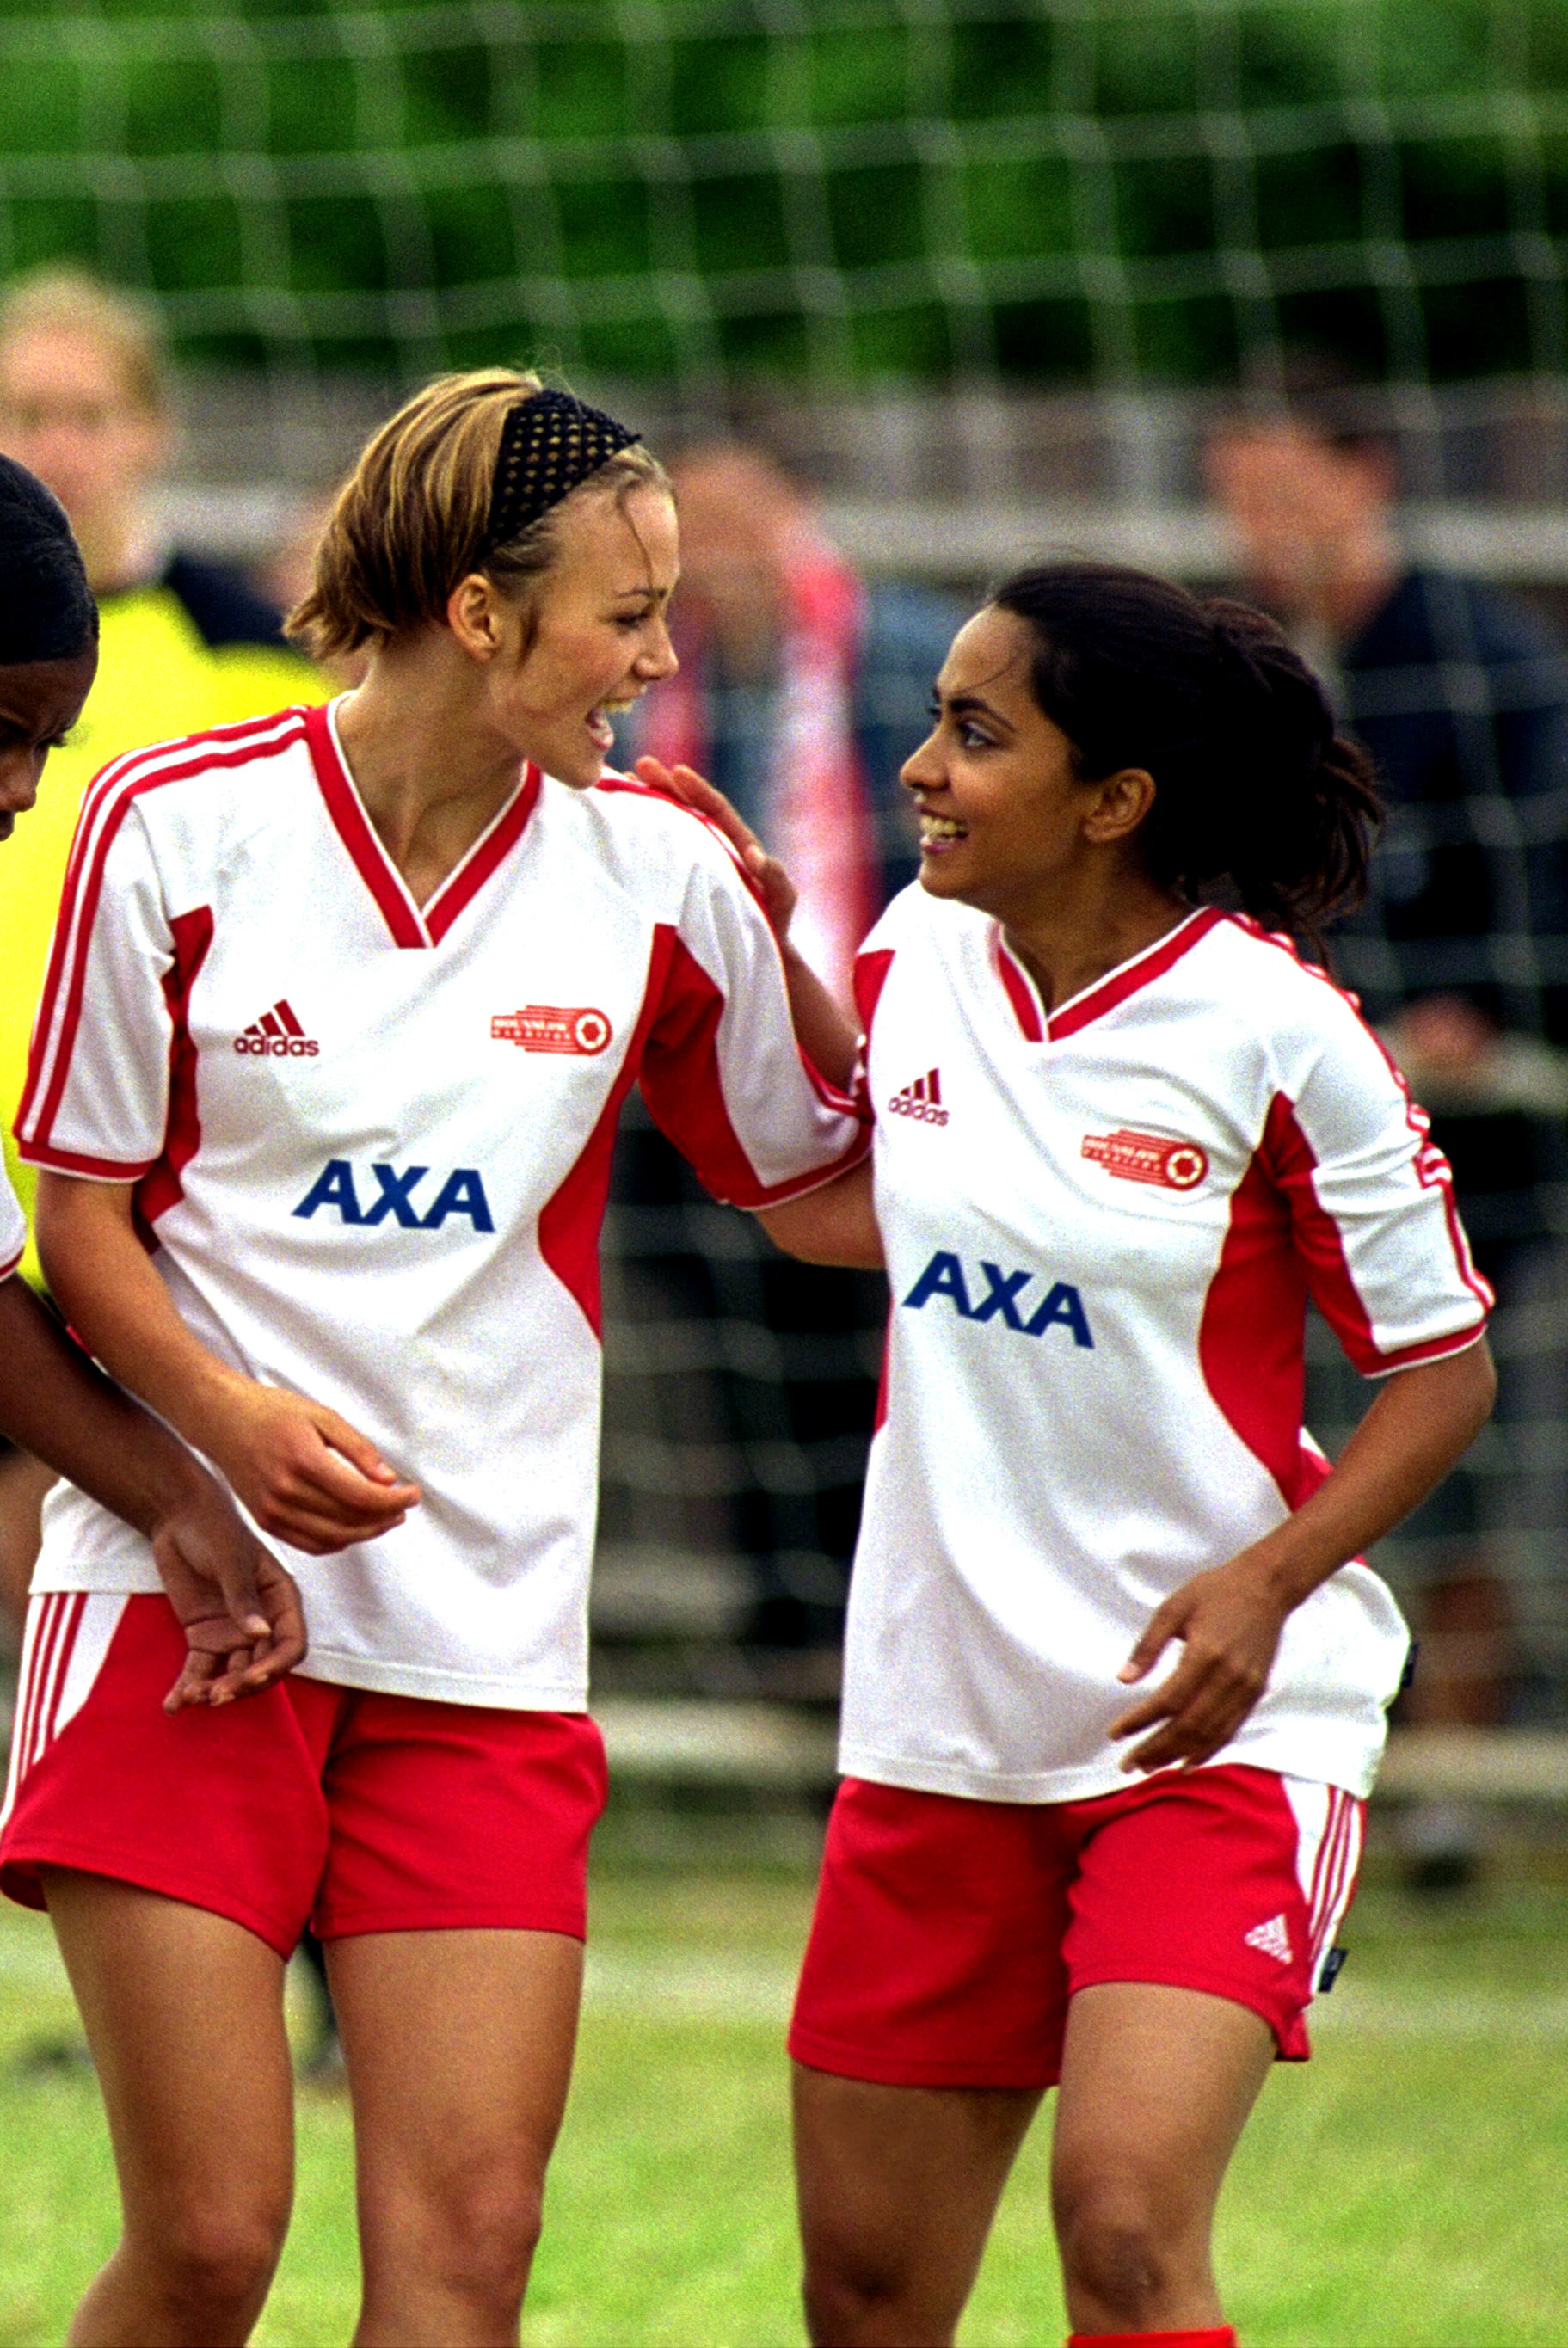 Jess and Jules on the field